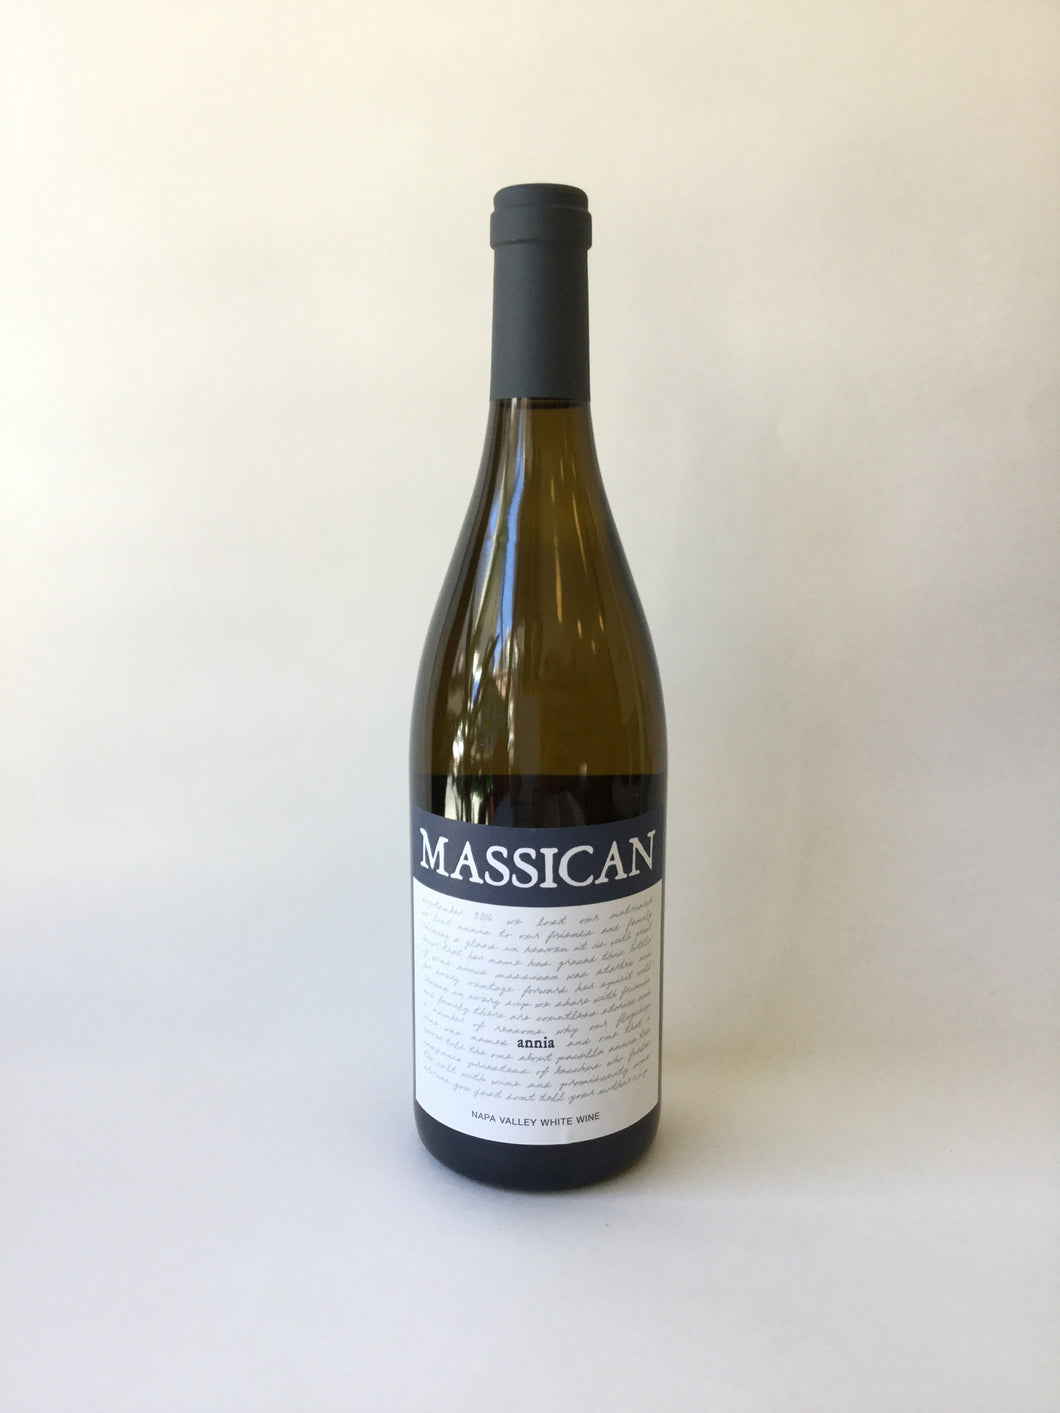 Massican, Napa Valley white 'Annia' 2016, 750ml - Frankly Wines